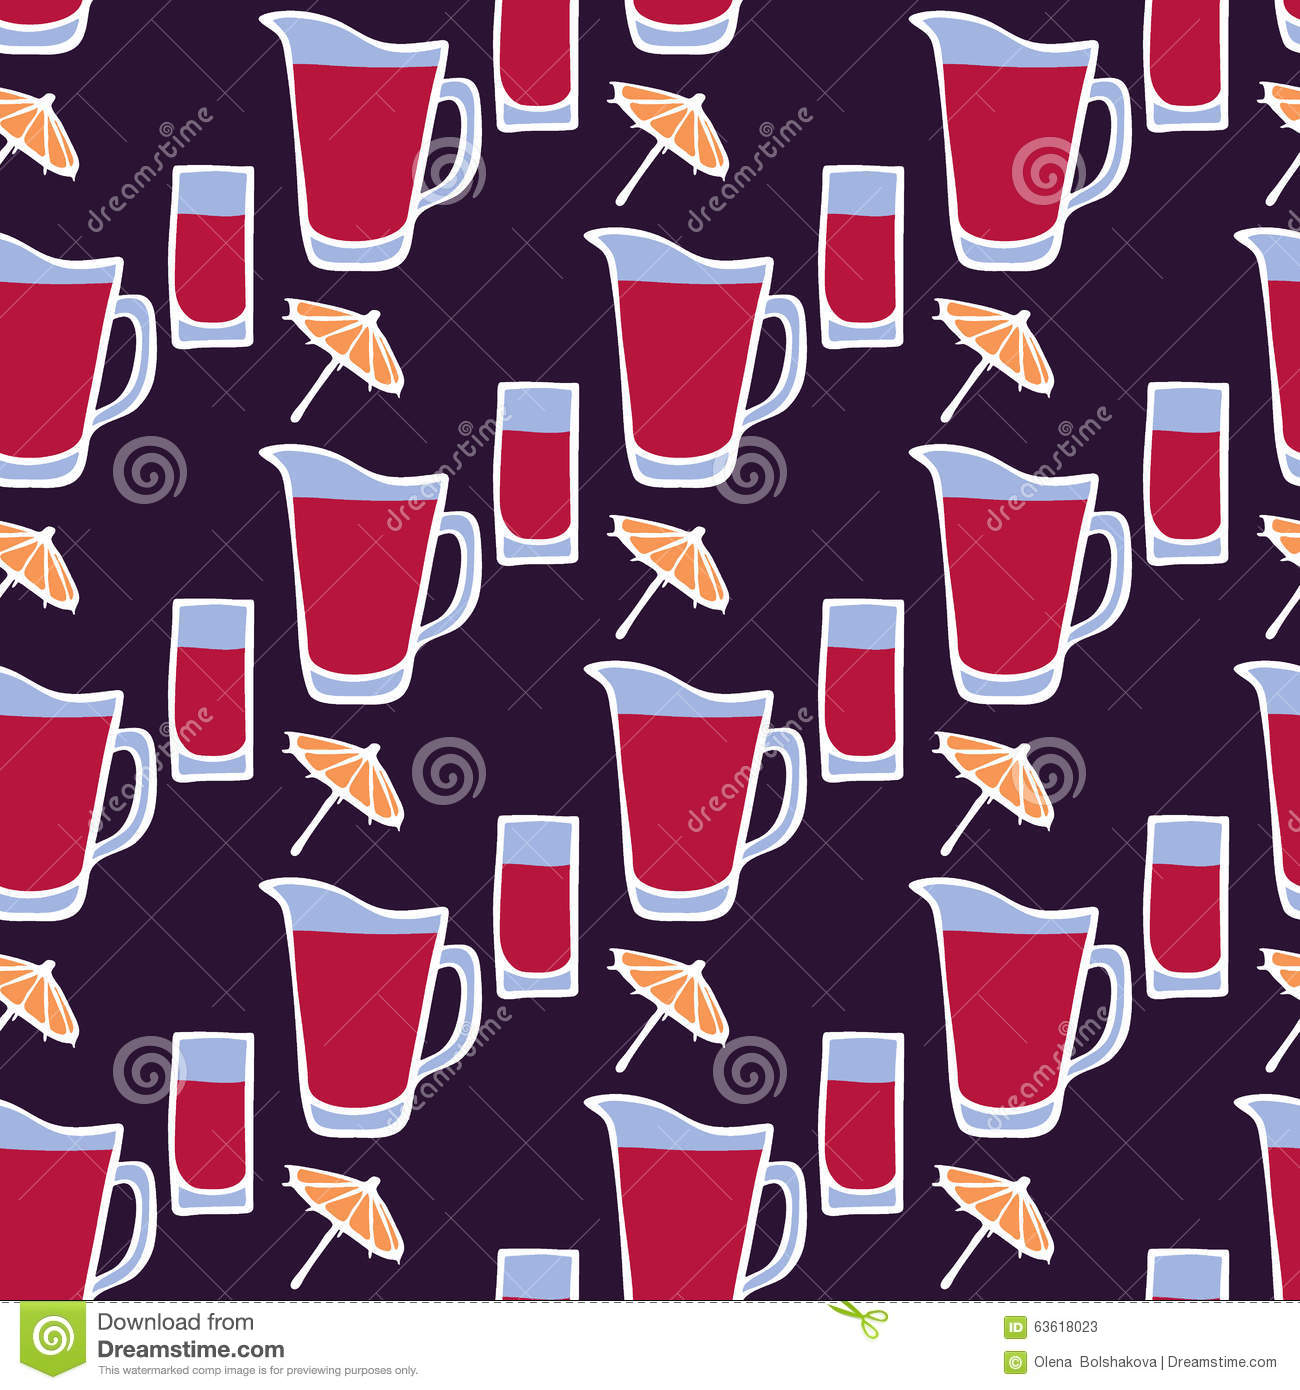 Cocktail. Seamless pattern with glass, umbrella